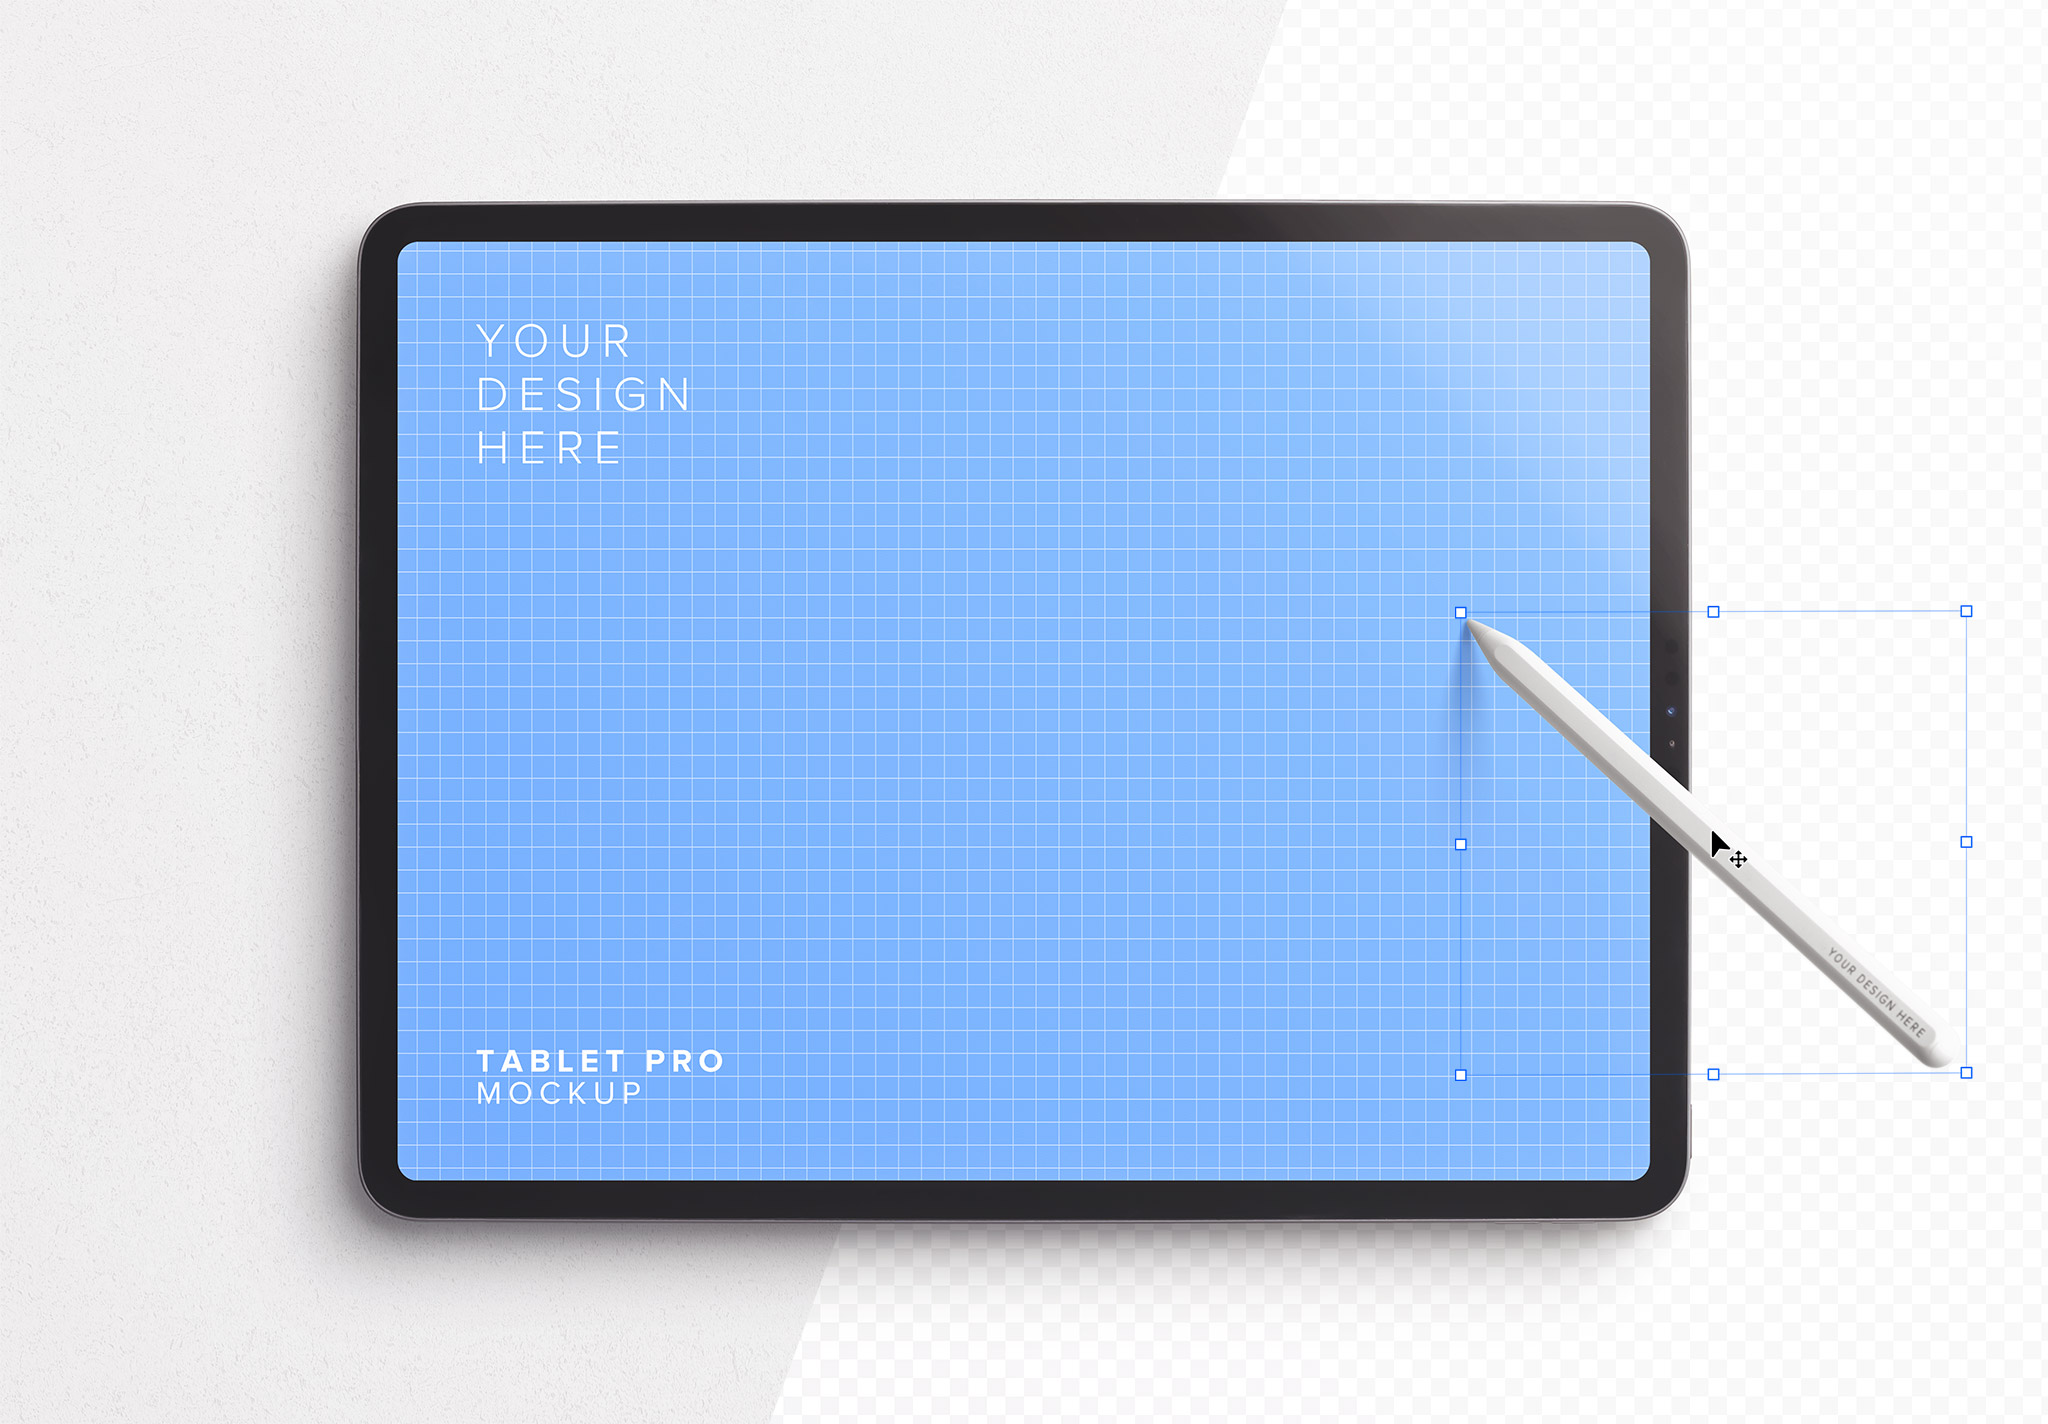 Tablet Pro Mockup with Tilted Pencil Image01